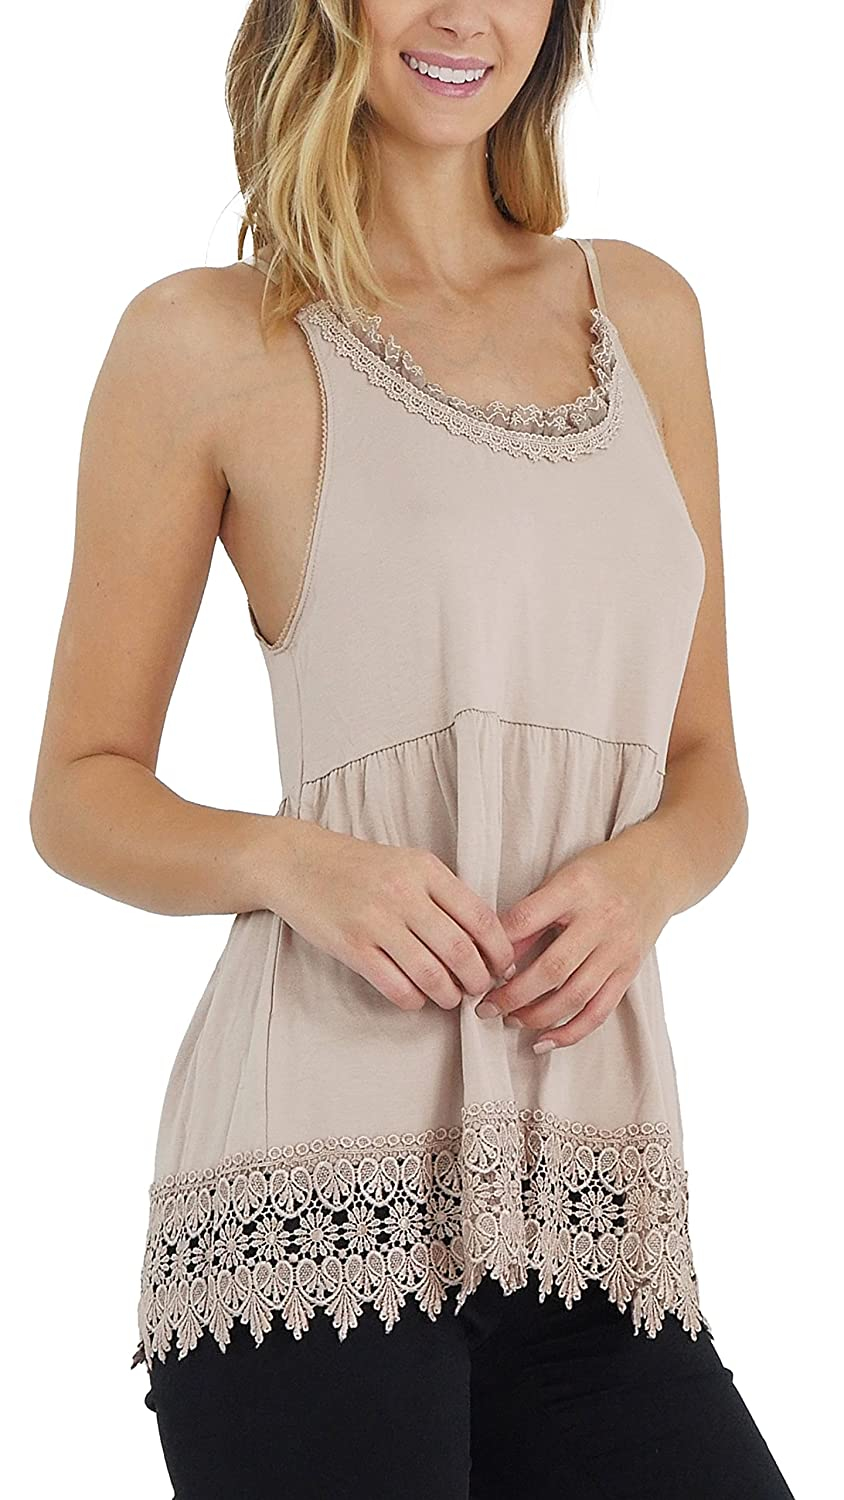 [Shop Lev] O2 Collection Lace Swing Cami with adjustable straps